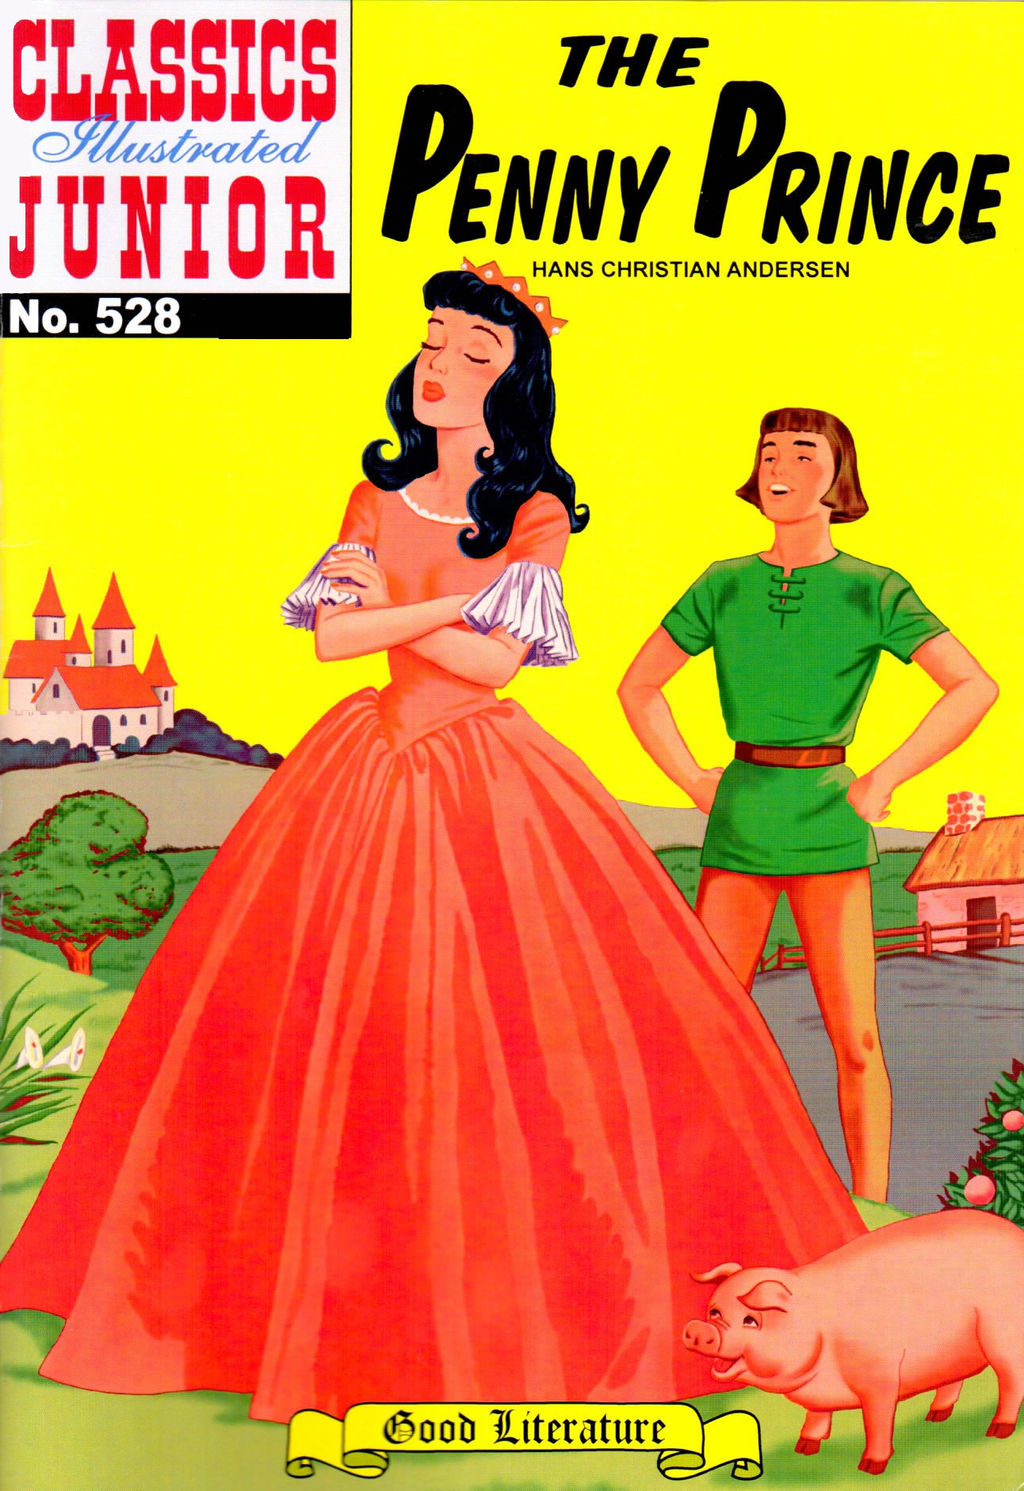 The Penny Prince - Classics Illustrated Junior #528 By: Hans Christian Andersen